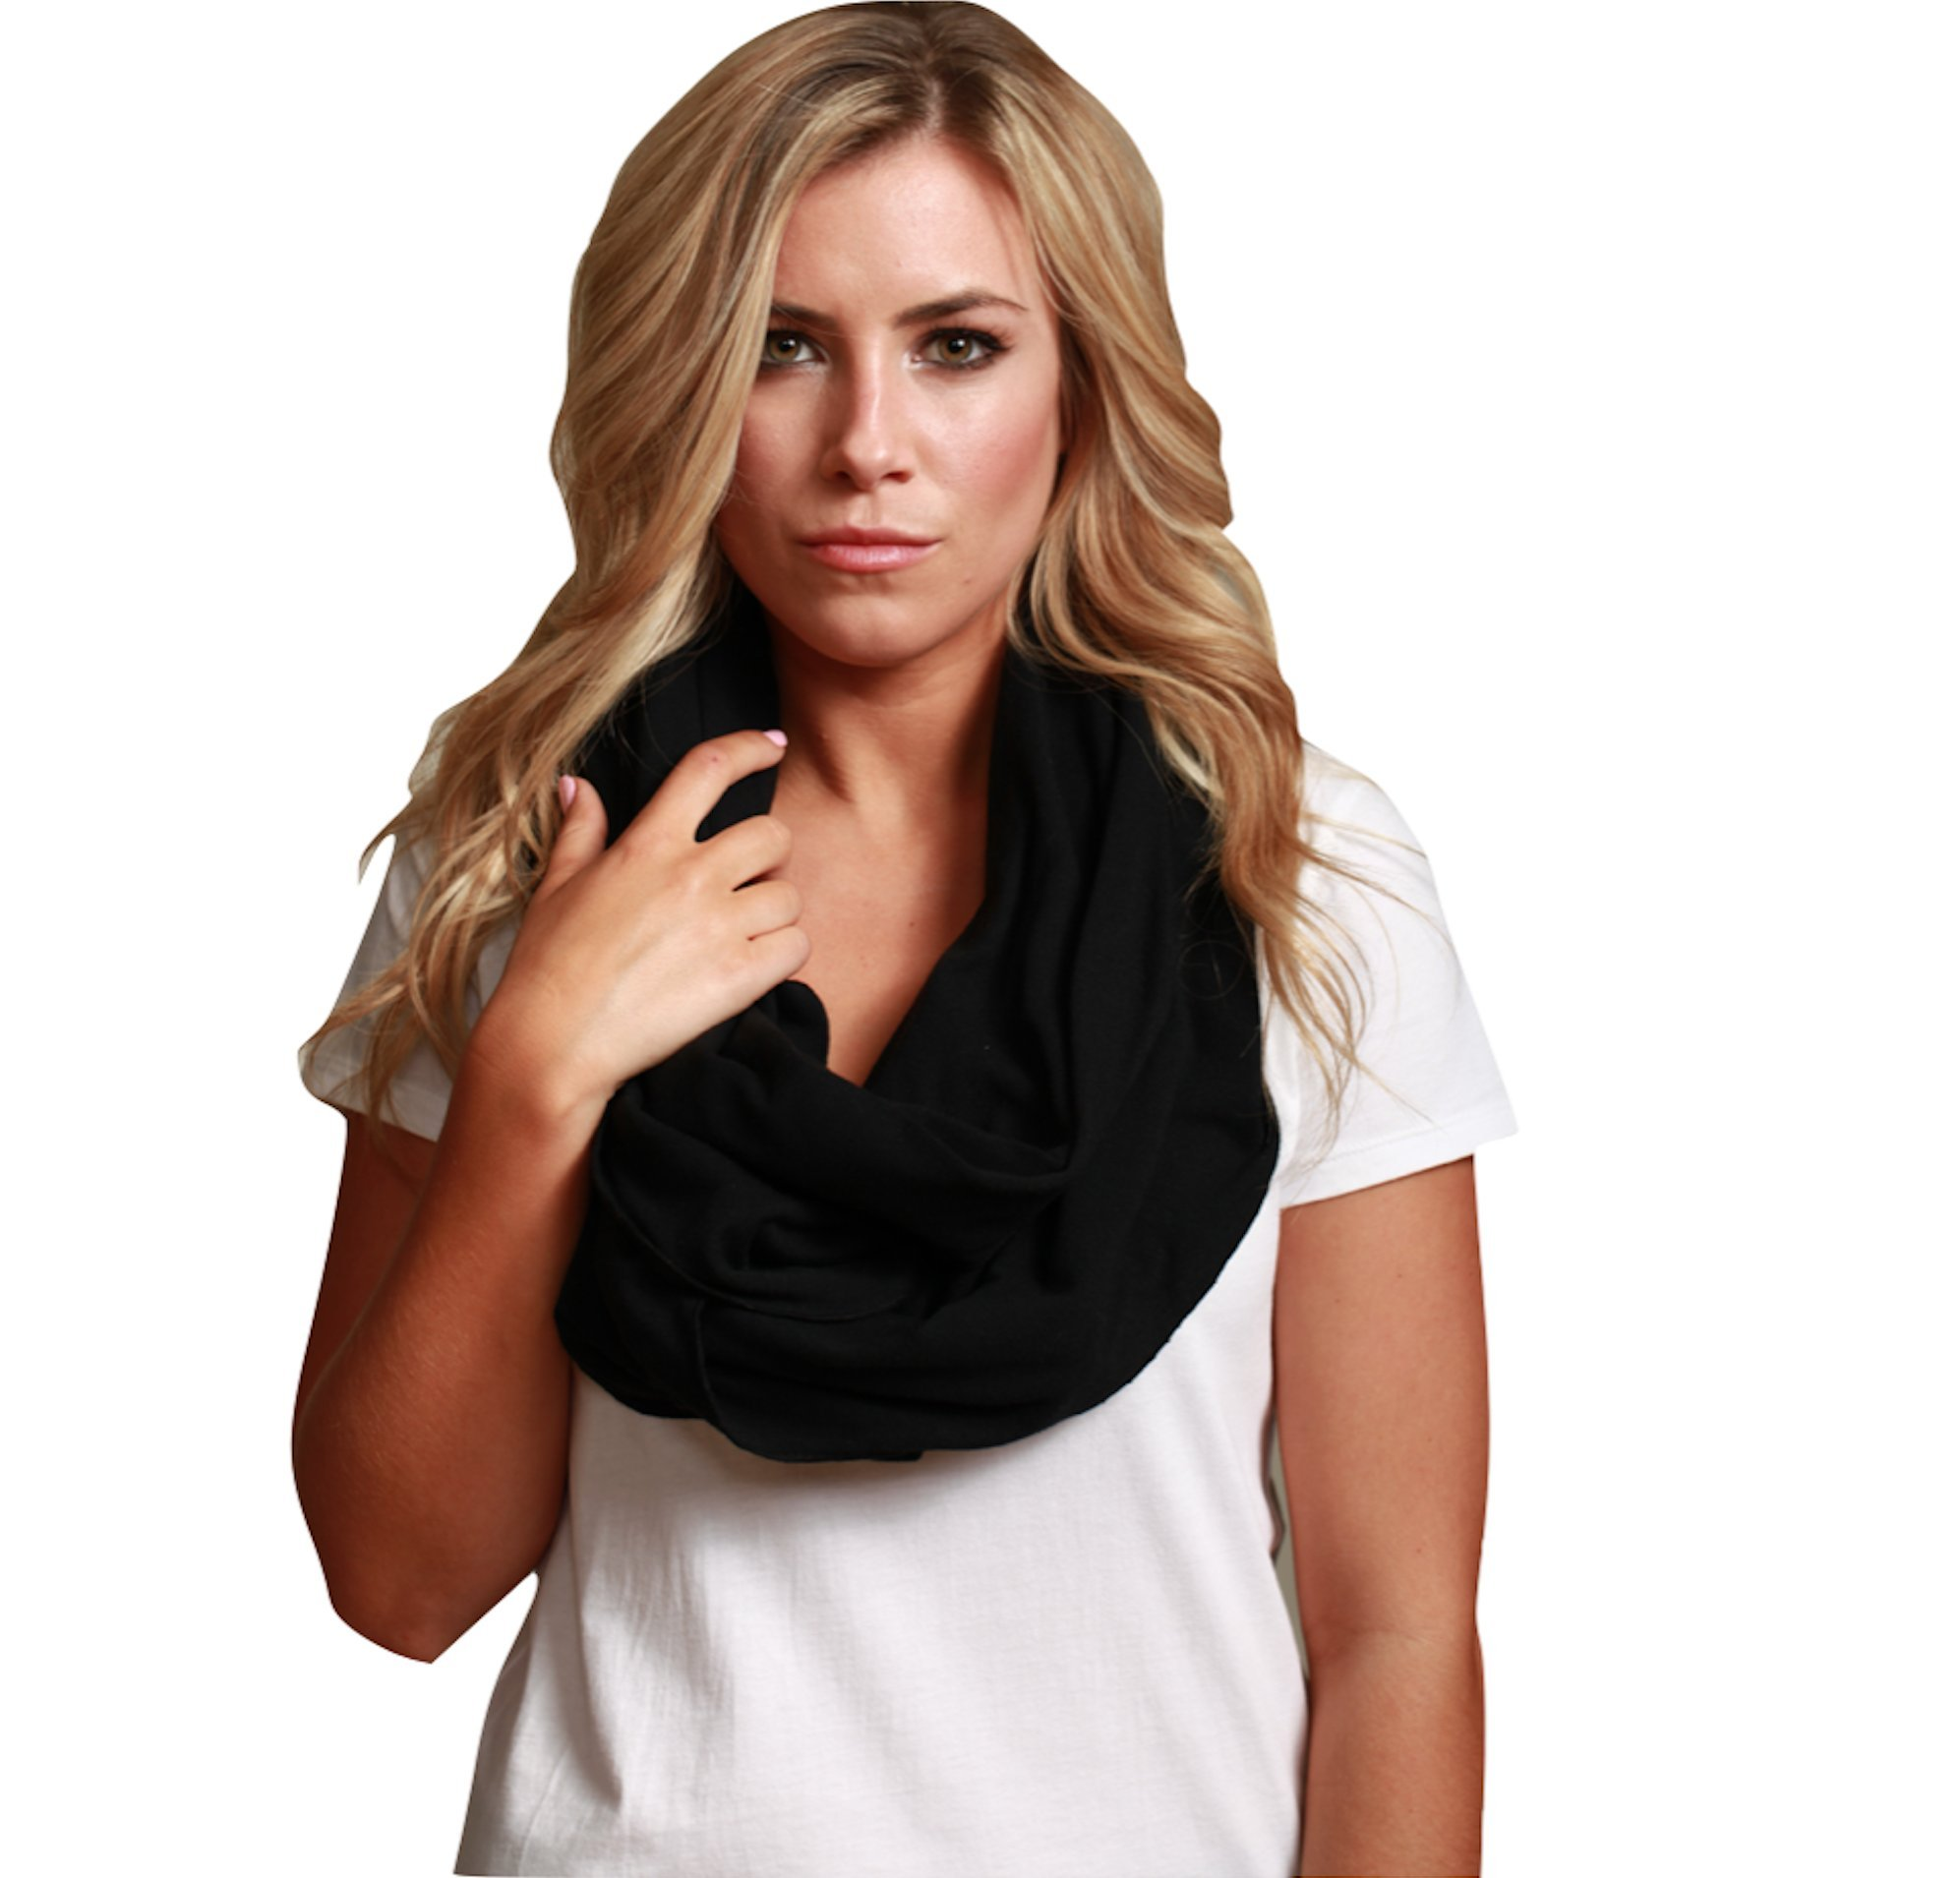 Sleeper Scarf 2-in-1 Travel Scarf and Inflatable Neck Pillow (Black, Traditional Inflate)